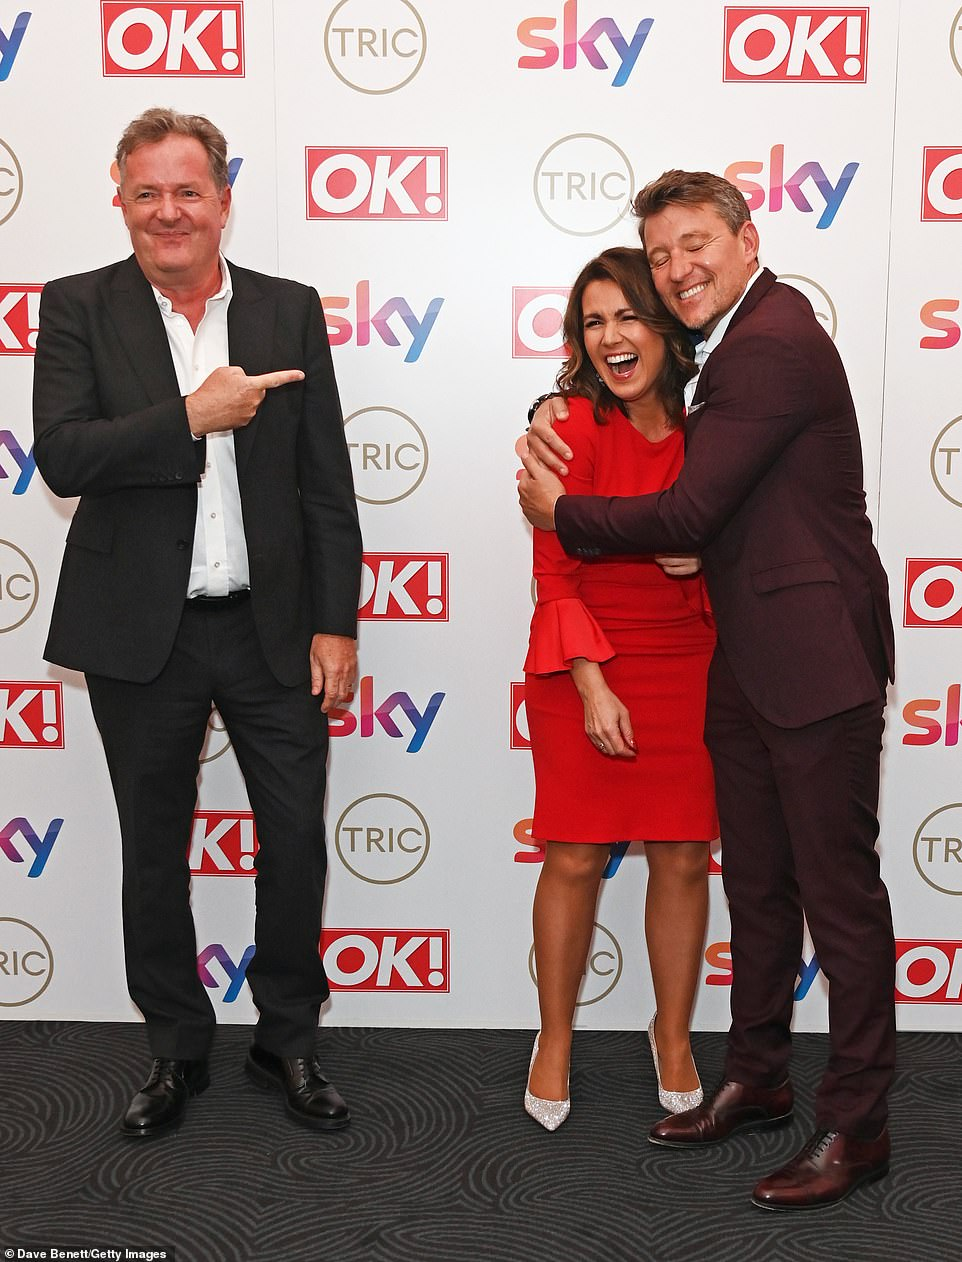 Funny: Ben Shephard, who also joined them on the red carpet, participated in the reunion